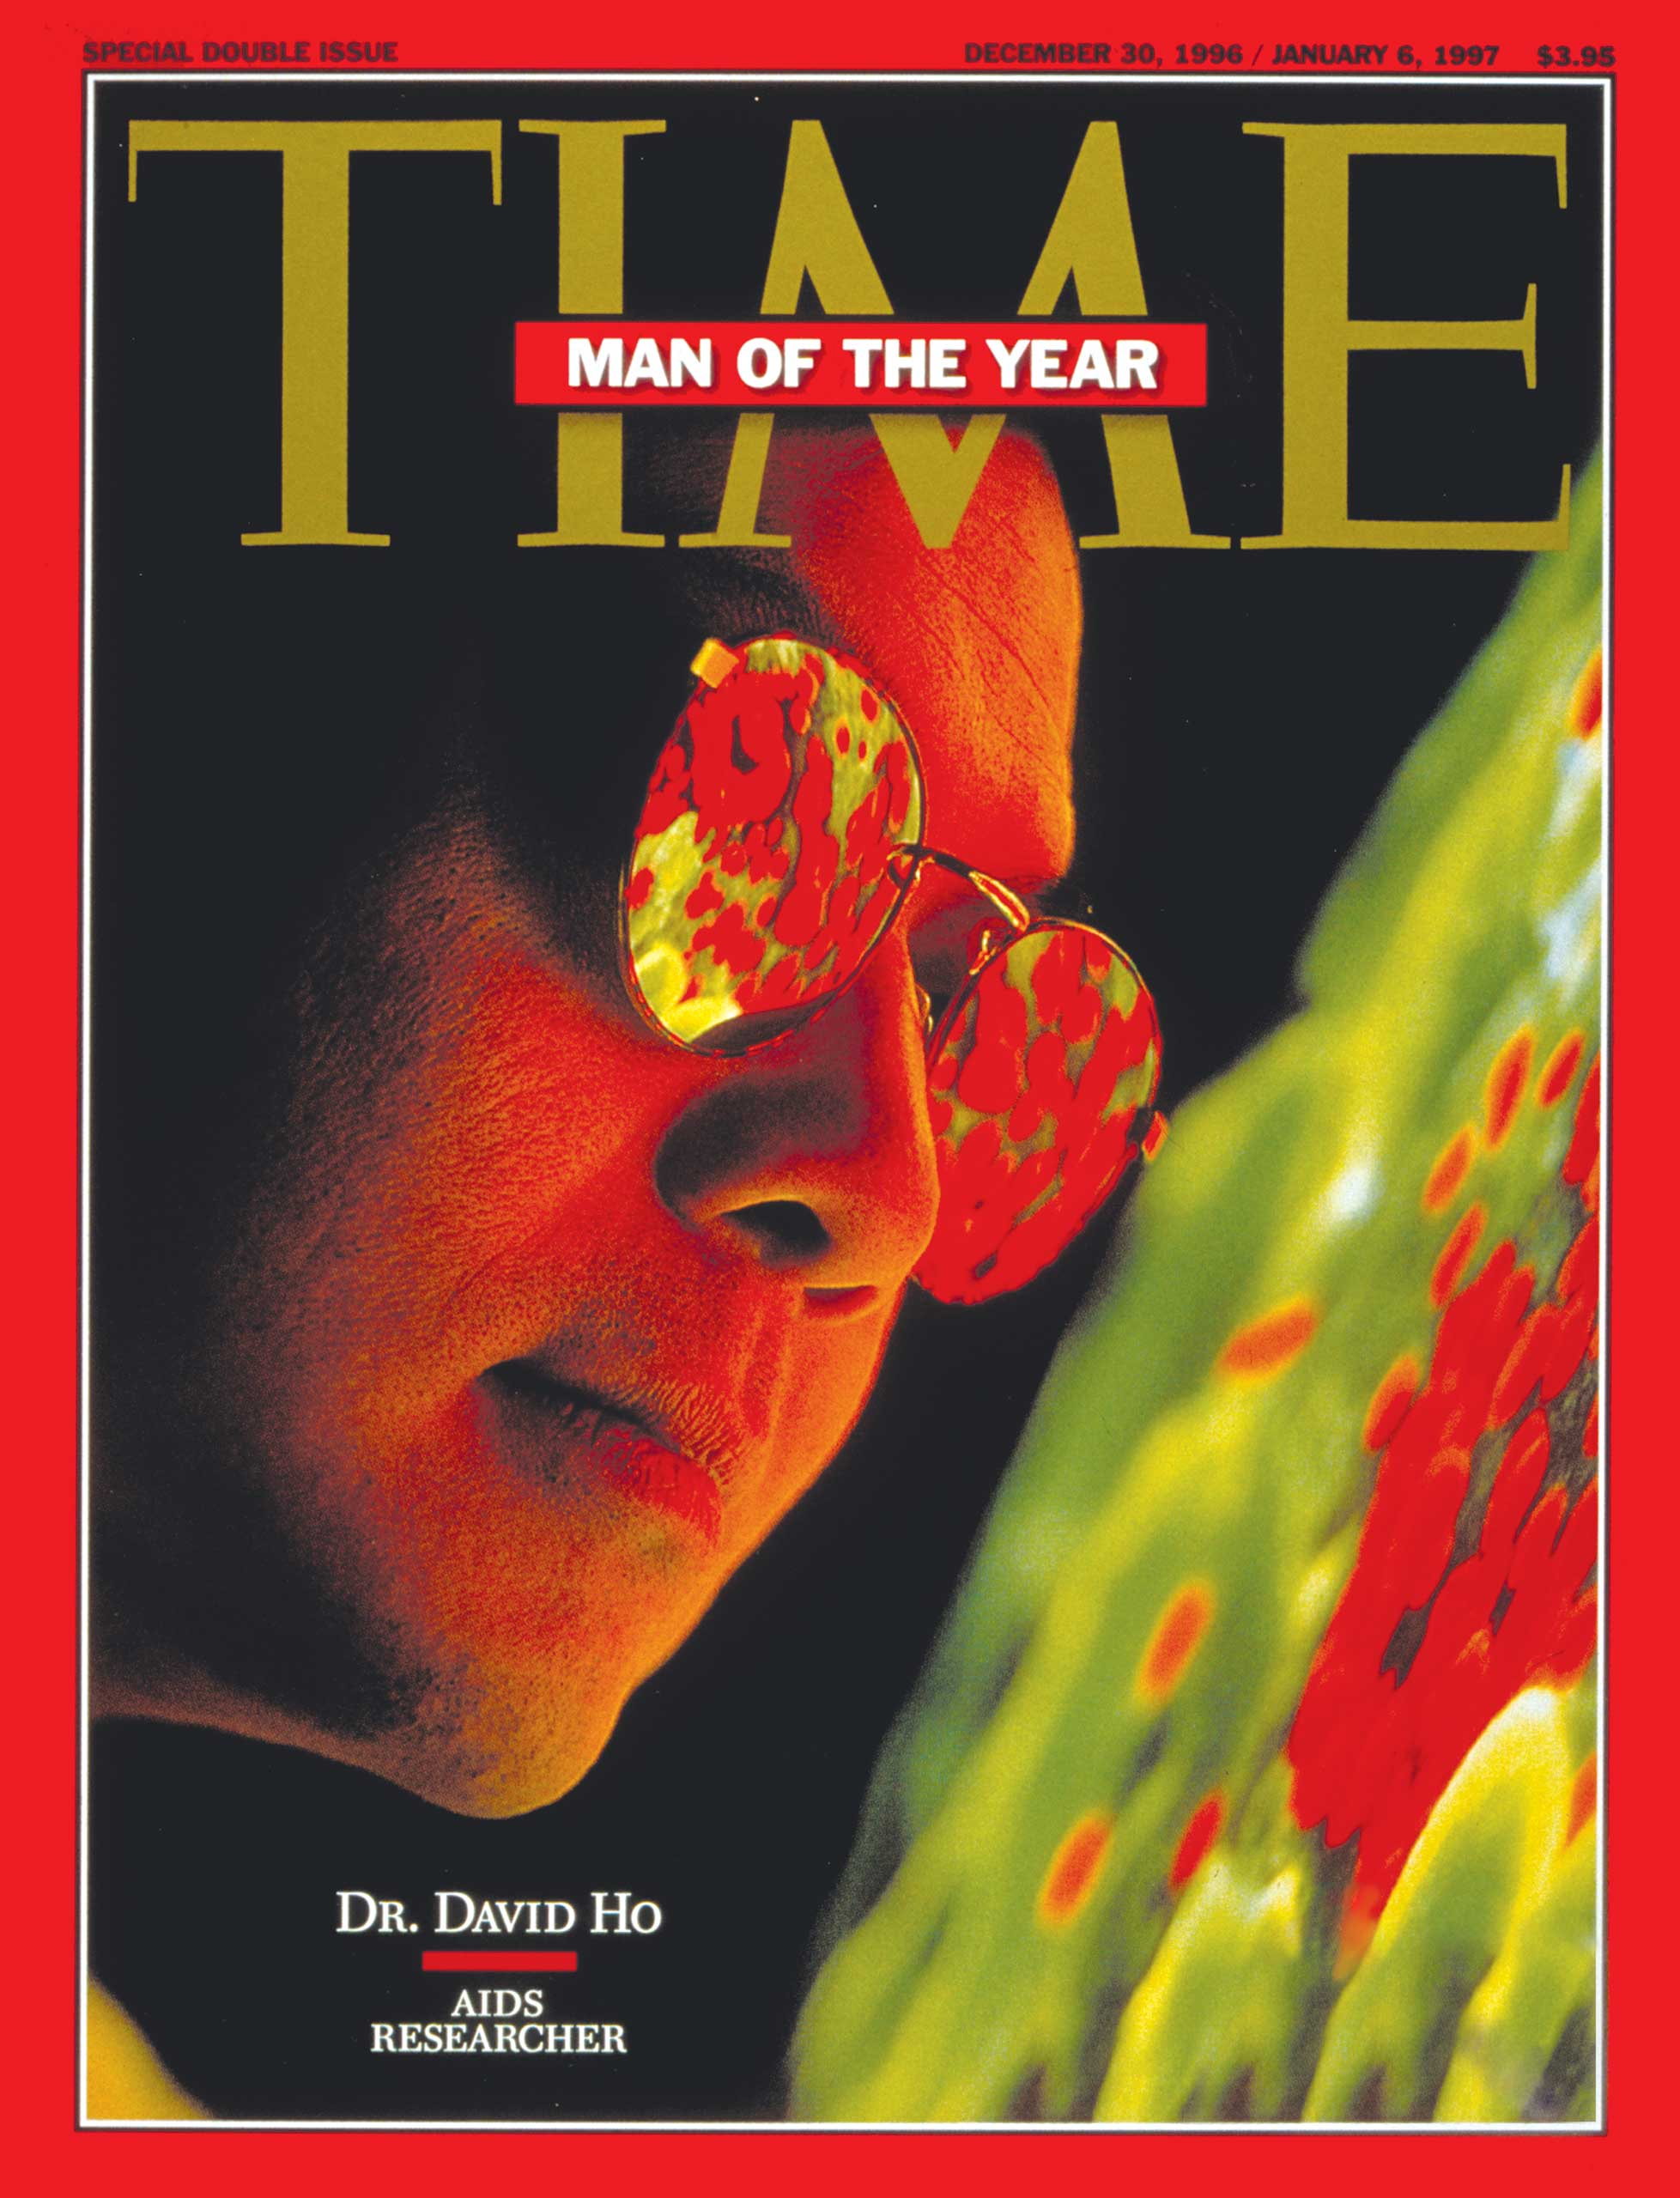 Dr. David Ho on the cover of the Dec. 30, 1996  TIME .